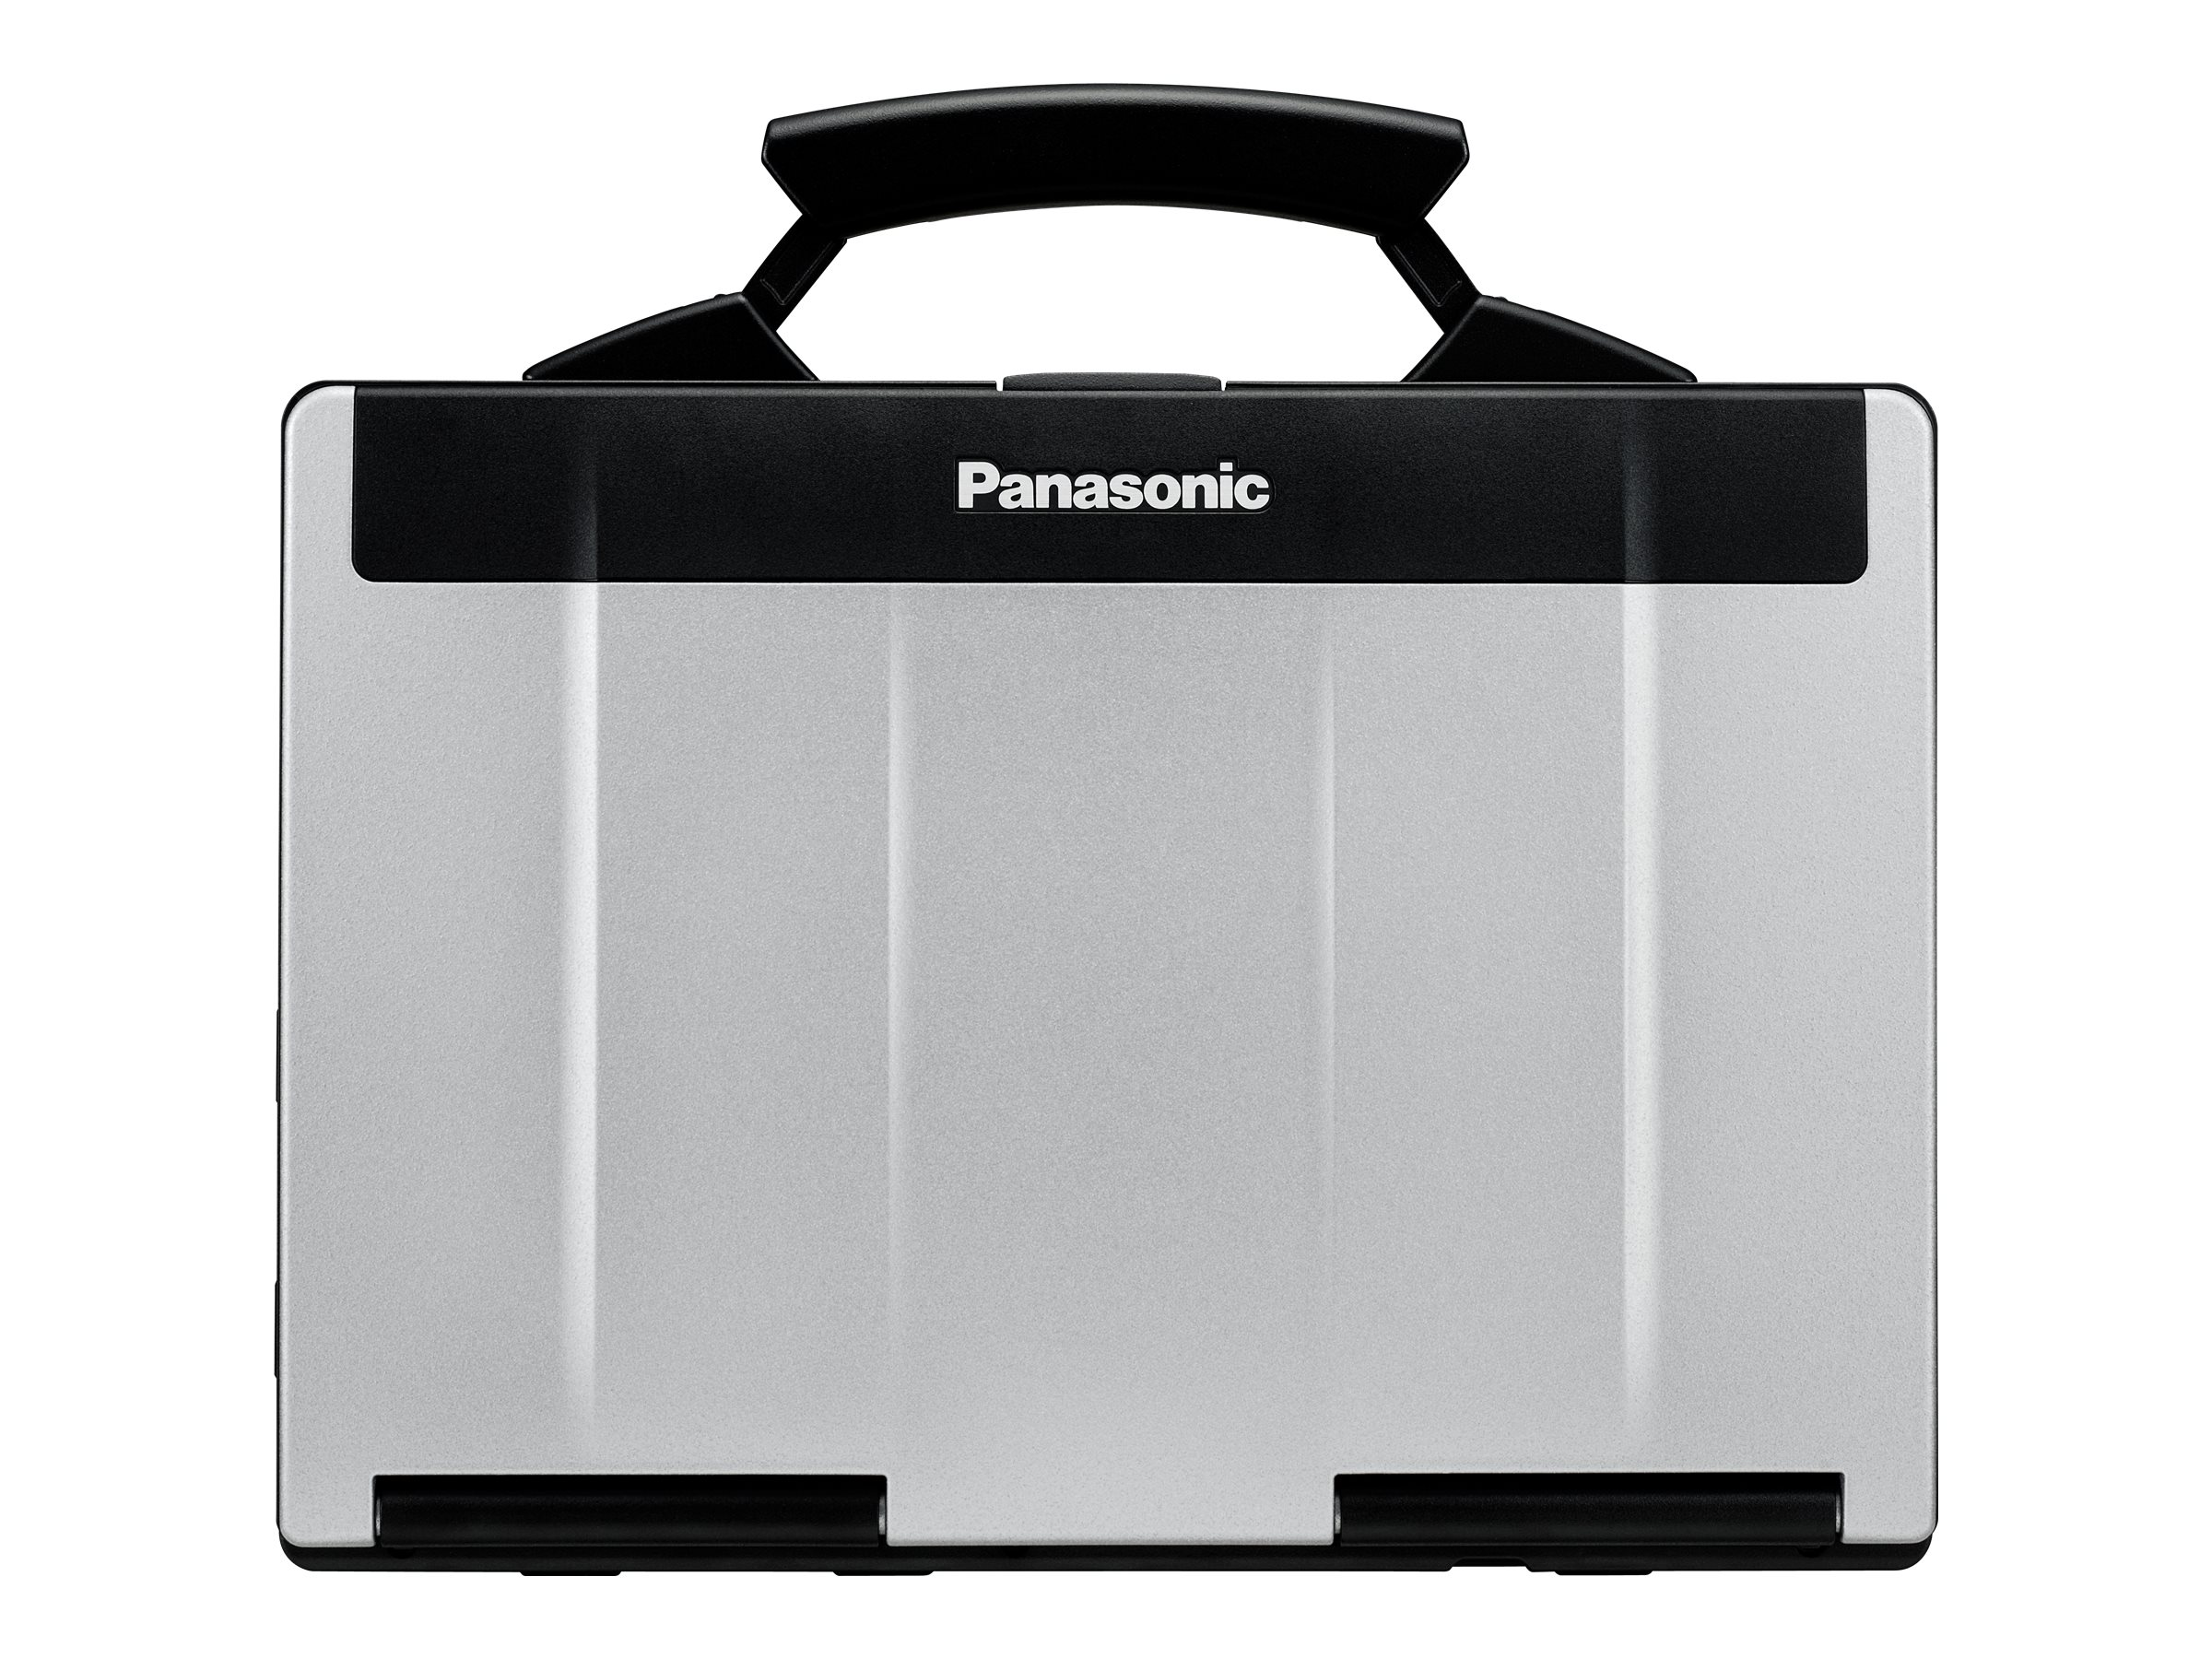 Panasonic Toughbook 53 Core i7-4600U 2.1GHz 14, CF-532SMZLTM